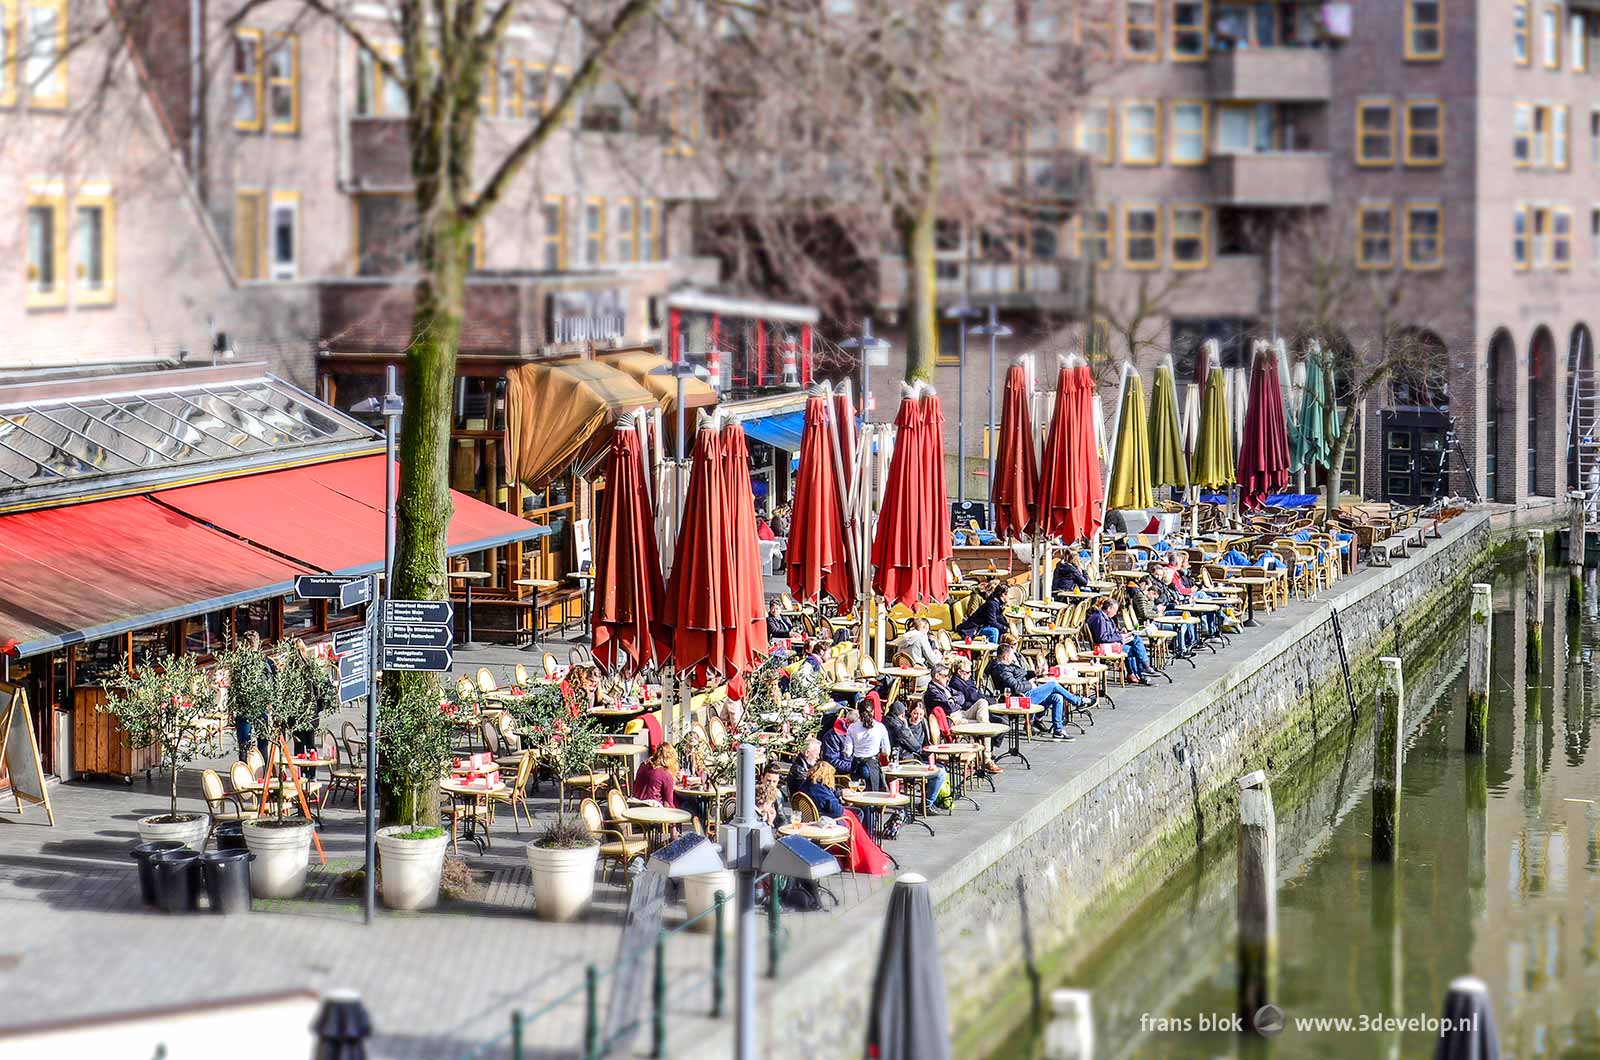 The Miniworld or Madurodam effect on a photo of outdoor cafes at the Old Harbor in Rotterdam